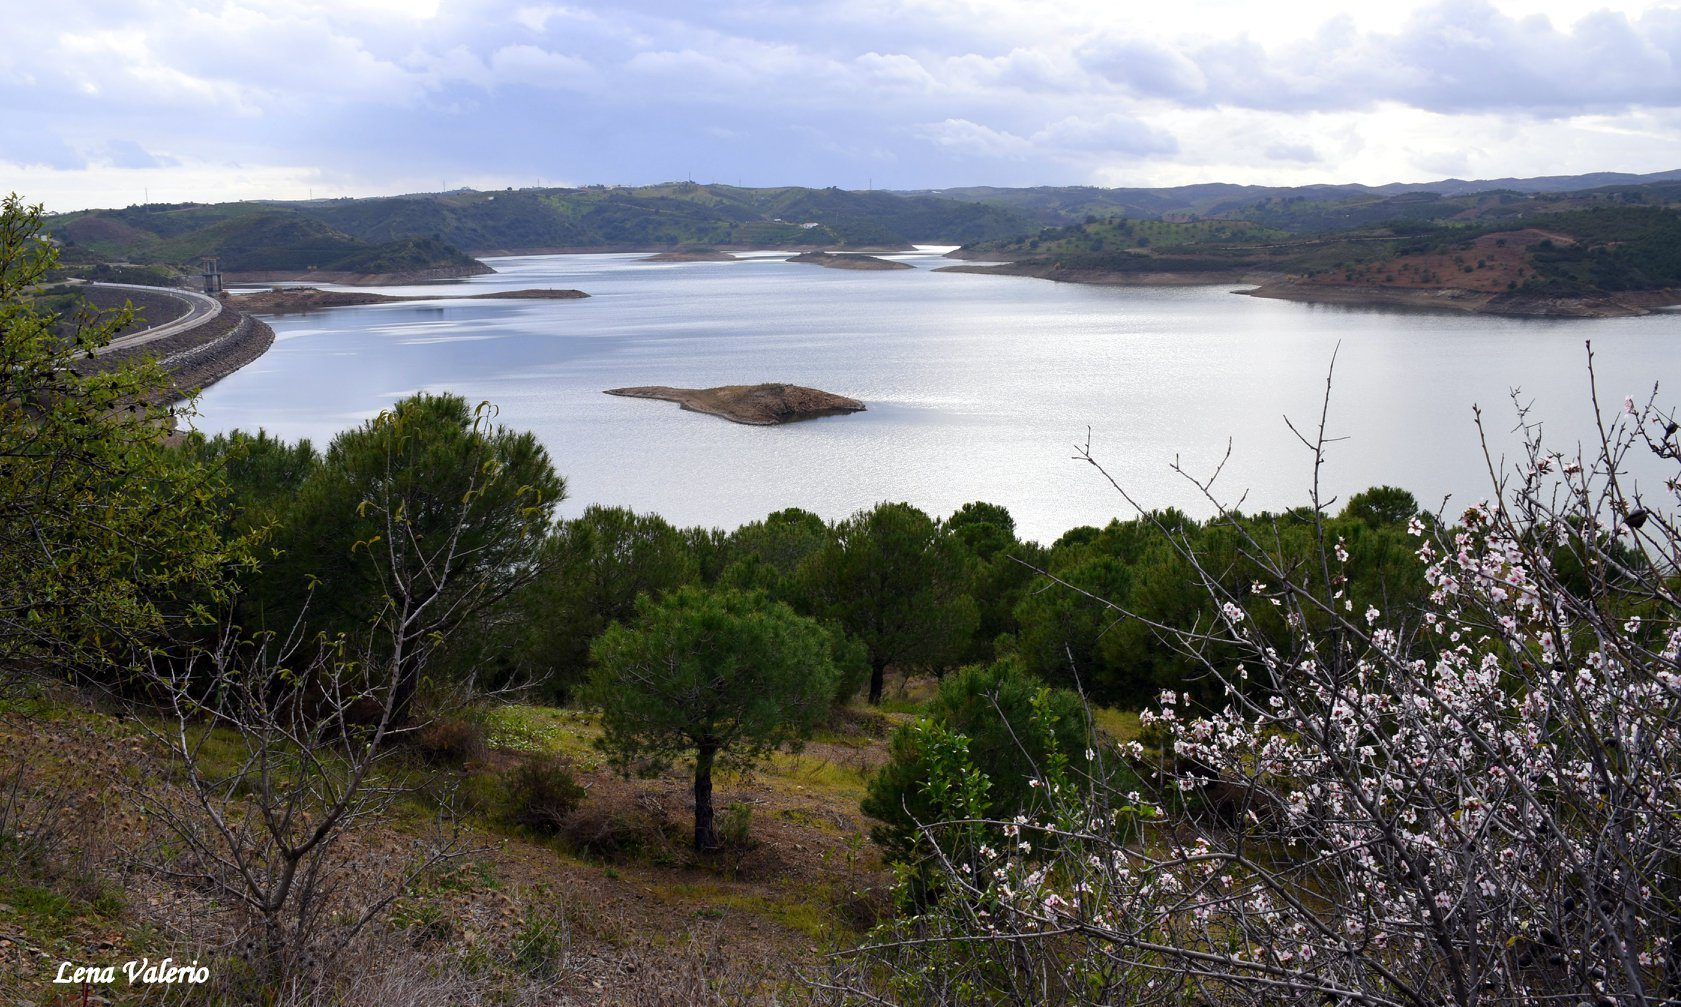 A Barragem do Beliche